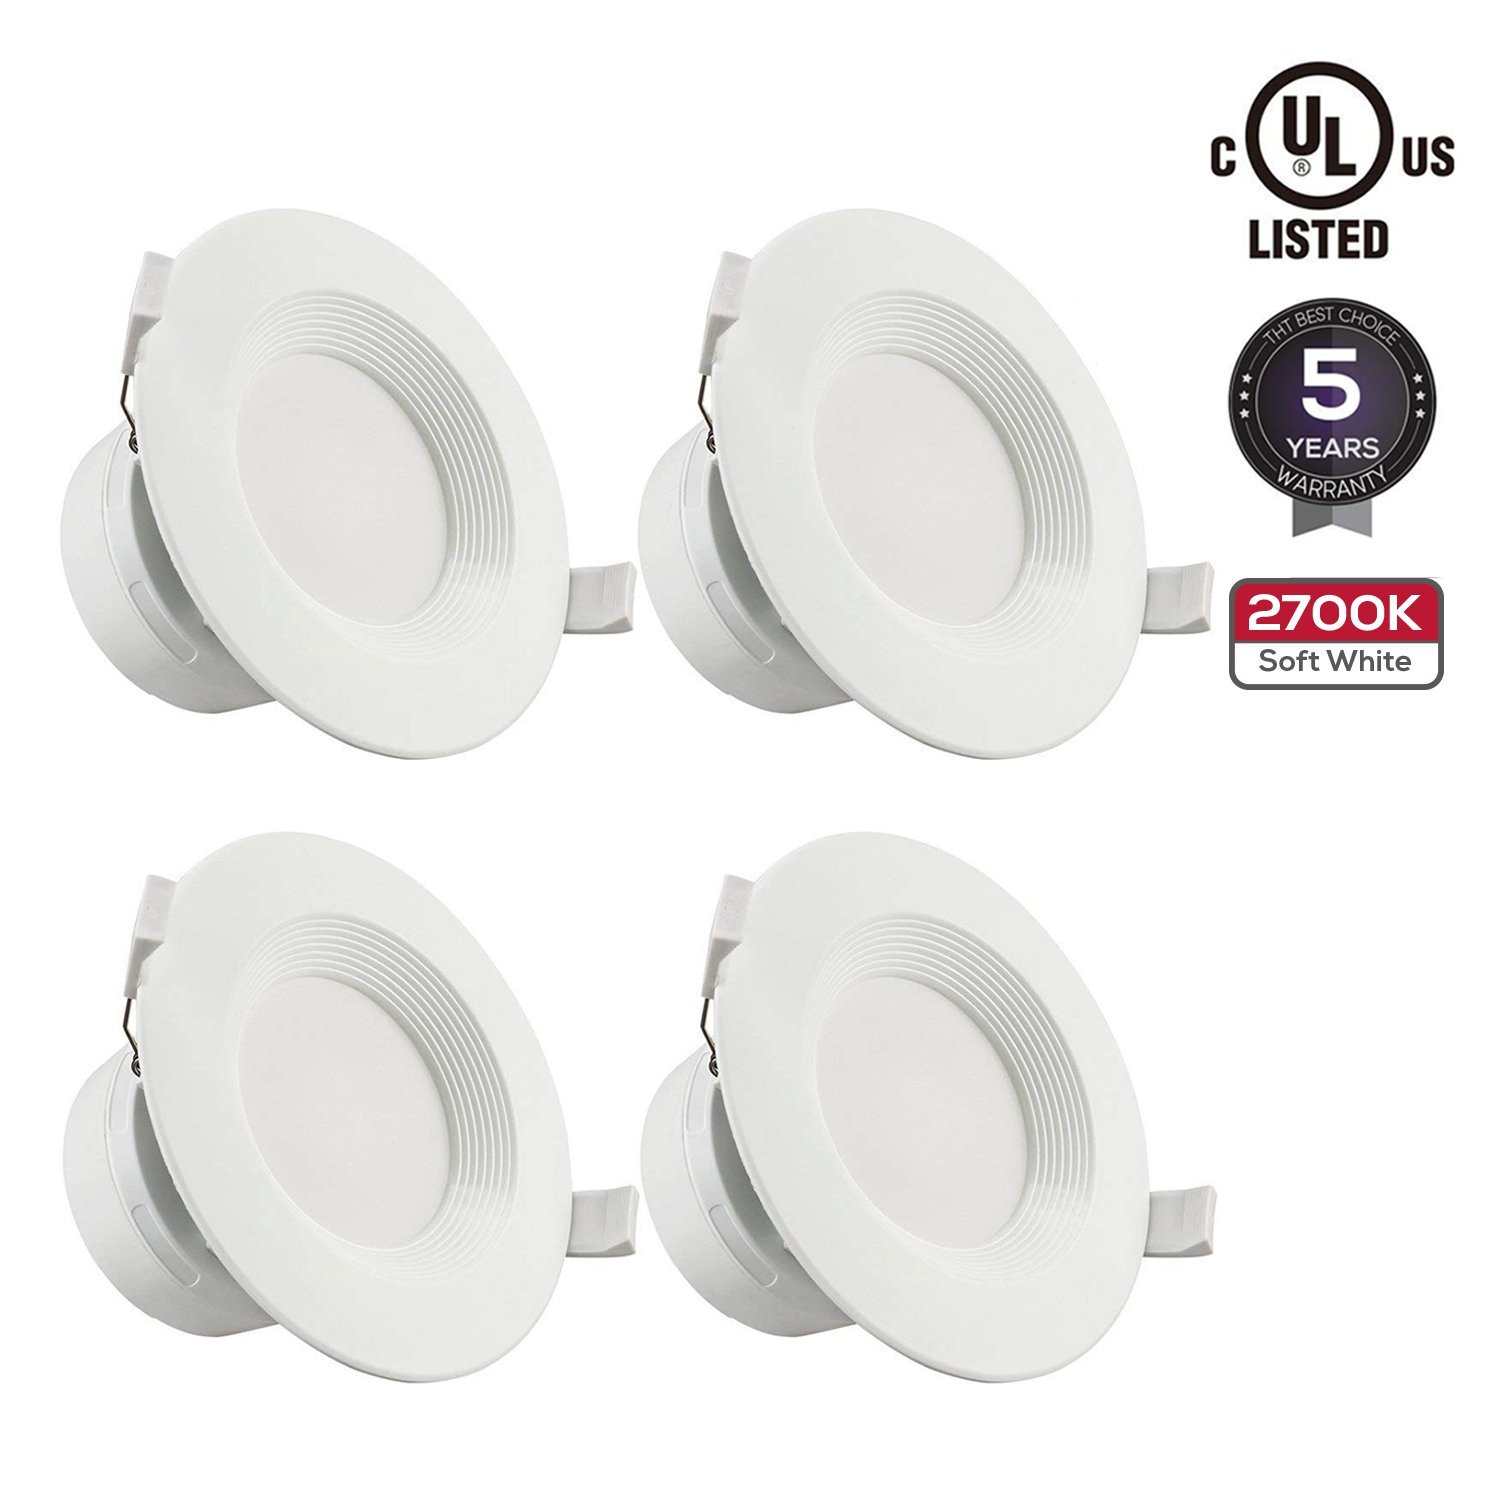 """TORCHSTAR 4 PACK 4""""LED Recessed Downlight with Junction Box, 7W (60W Equivalent) Dimmable LED Ceiling Light Fixture, IC-Rated & Air Tight, Wet Location, 2700K Soft White, UL-listed, 5 Years Warranty"""